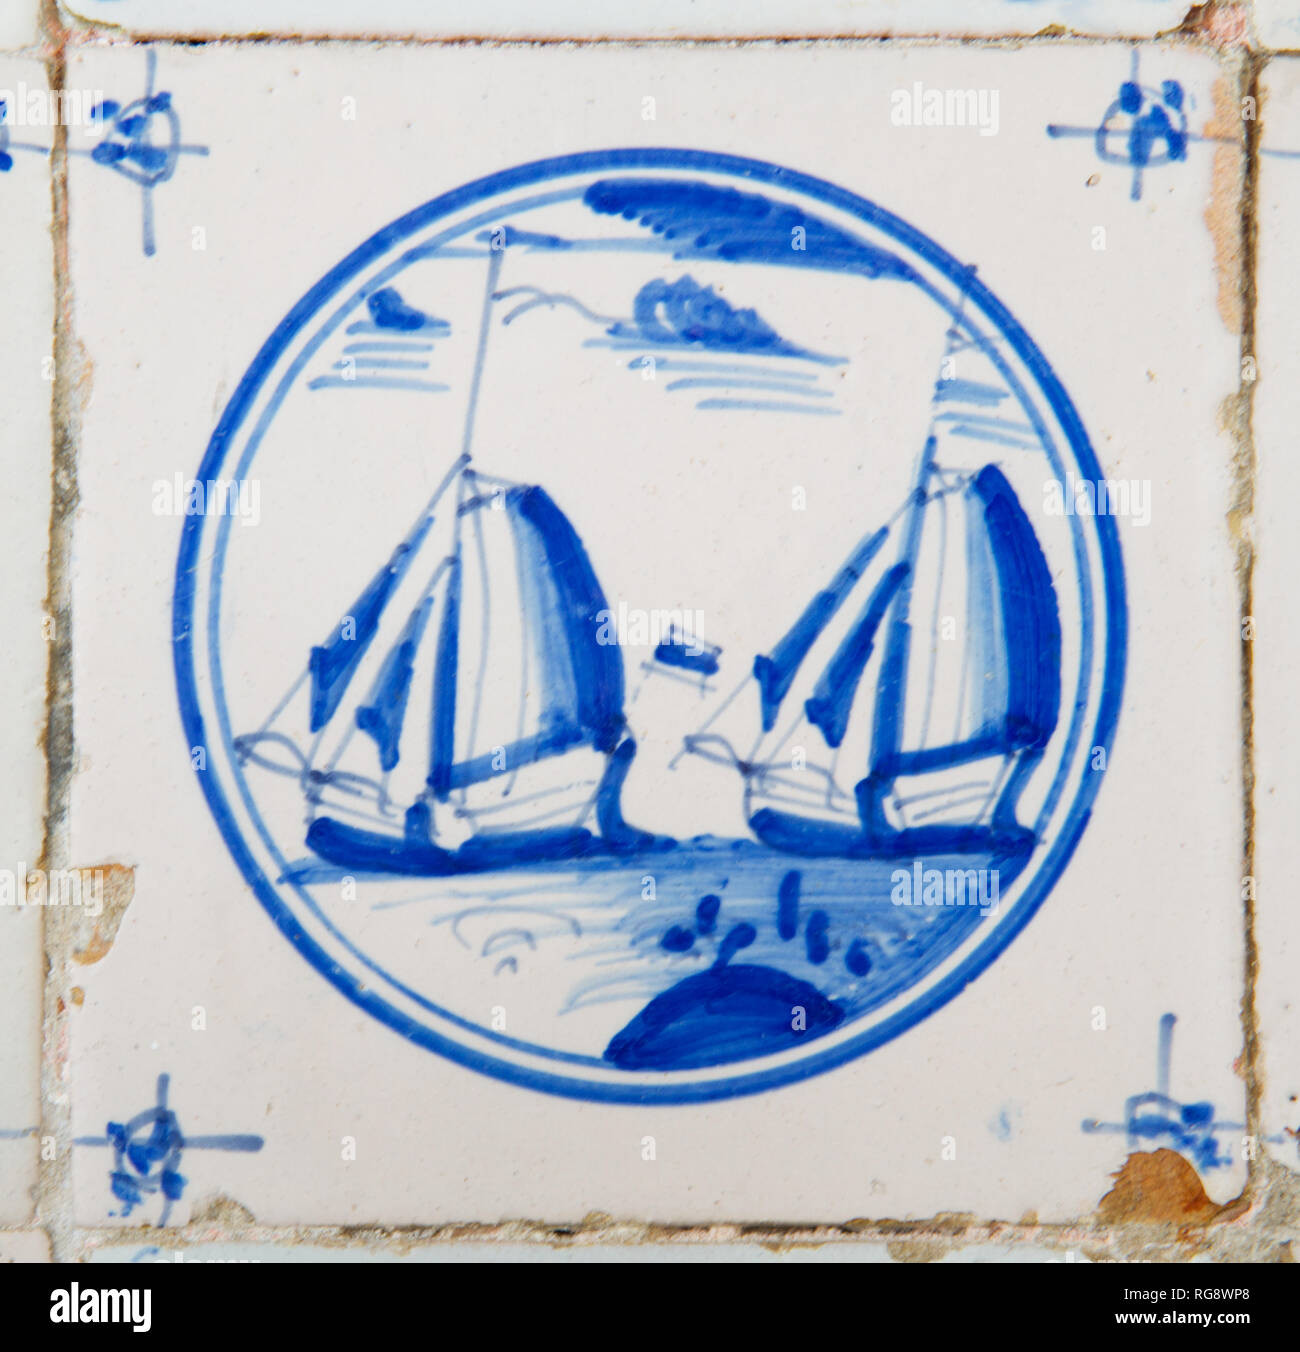 Delft blue and white tile with the painting of sailing ships - Stock Image